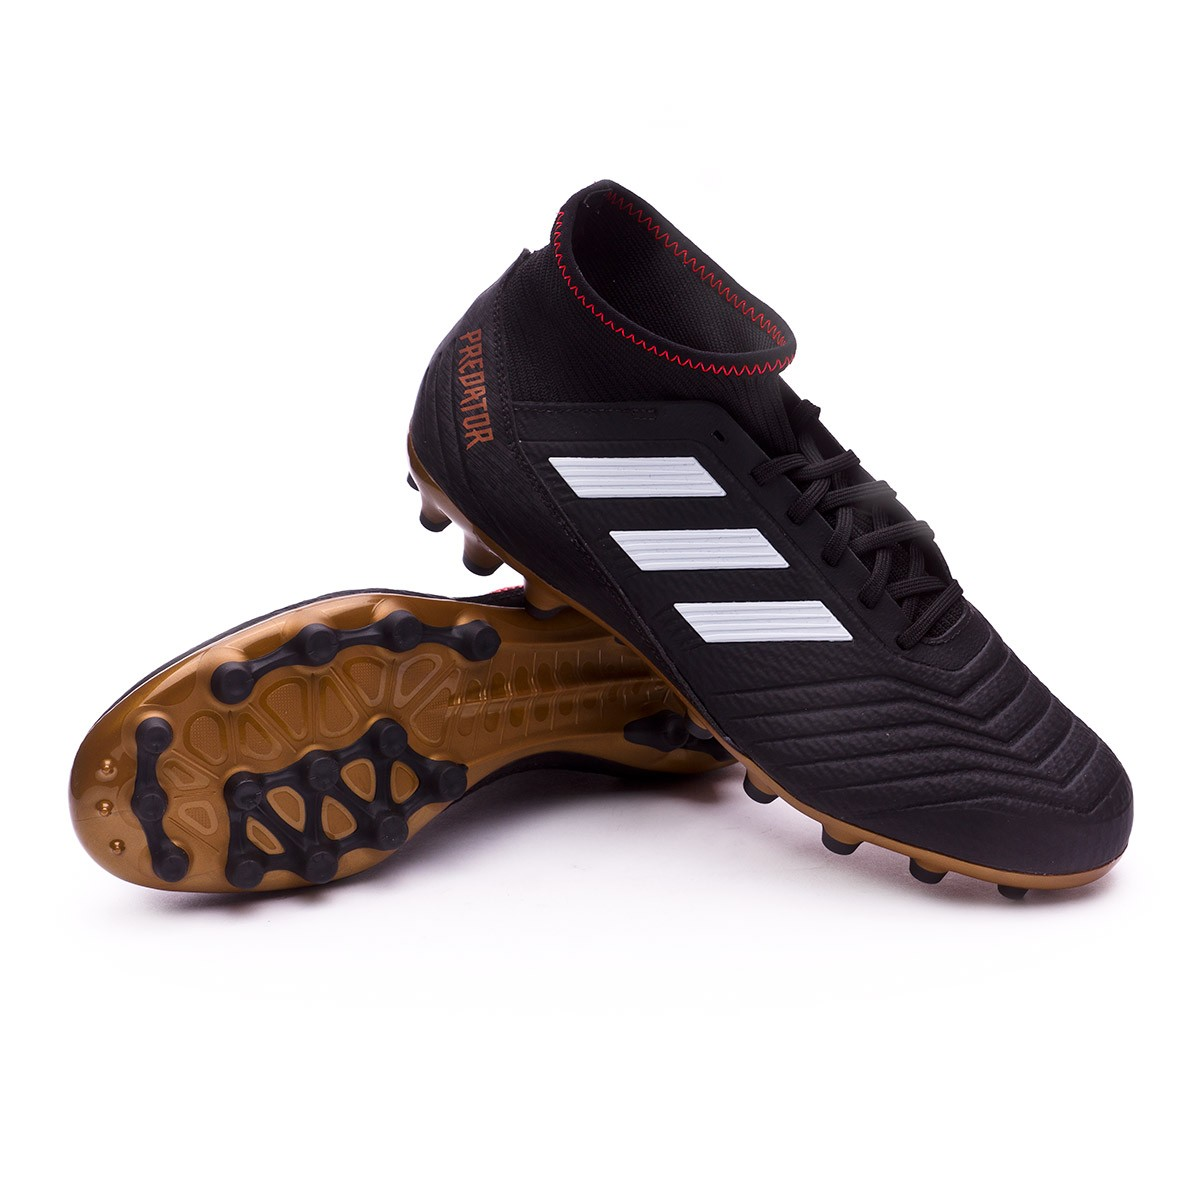 d51106e3e1ed Football Boots adidas Predator 18.3 AG Core black-White-Gold ...